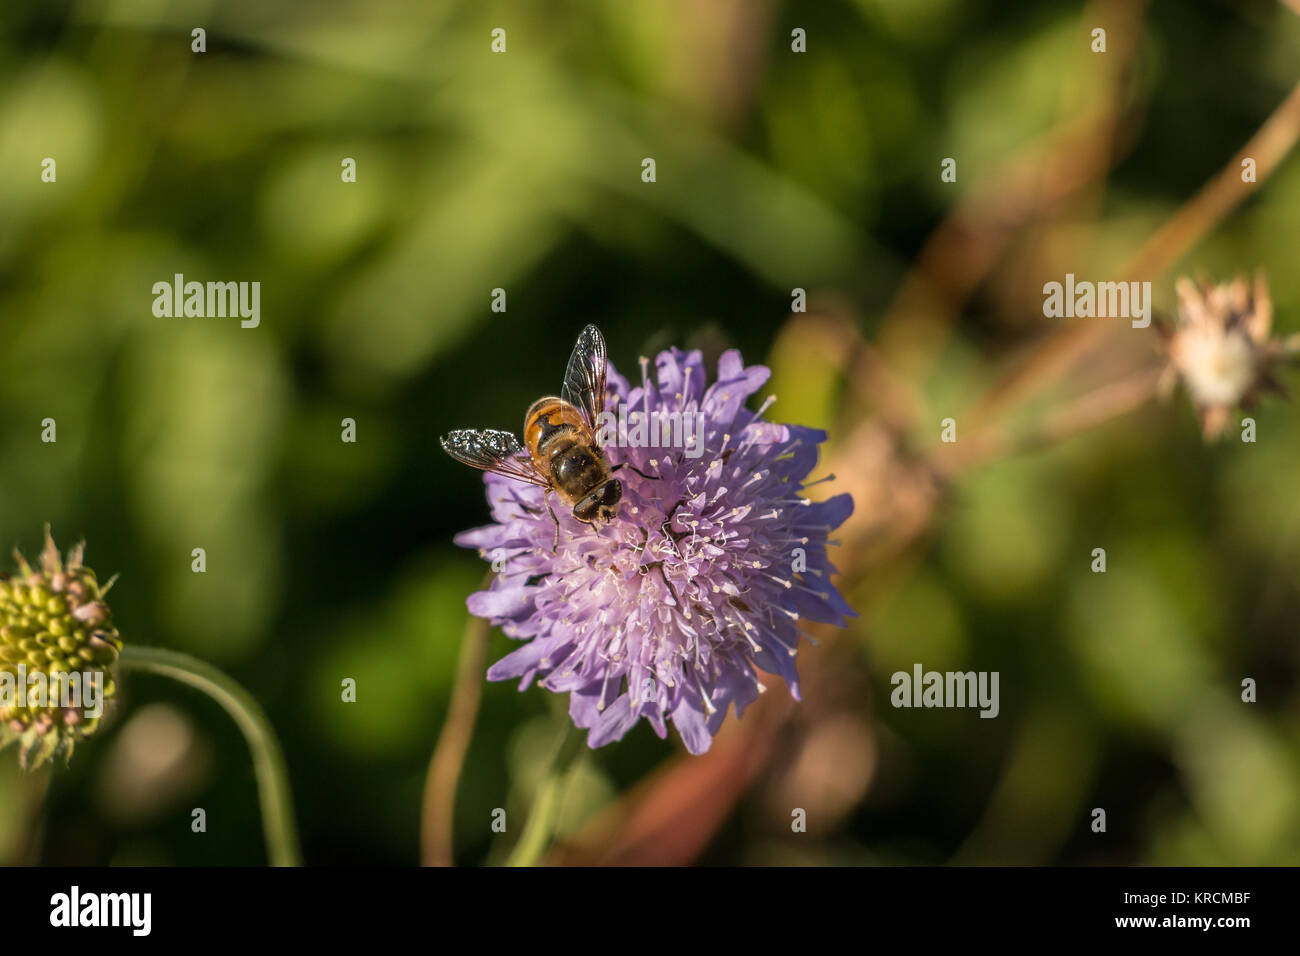 Fly on violet flower on the green field of the park Stock Photo